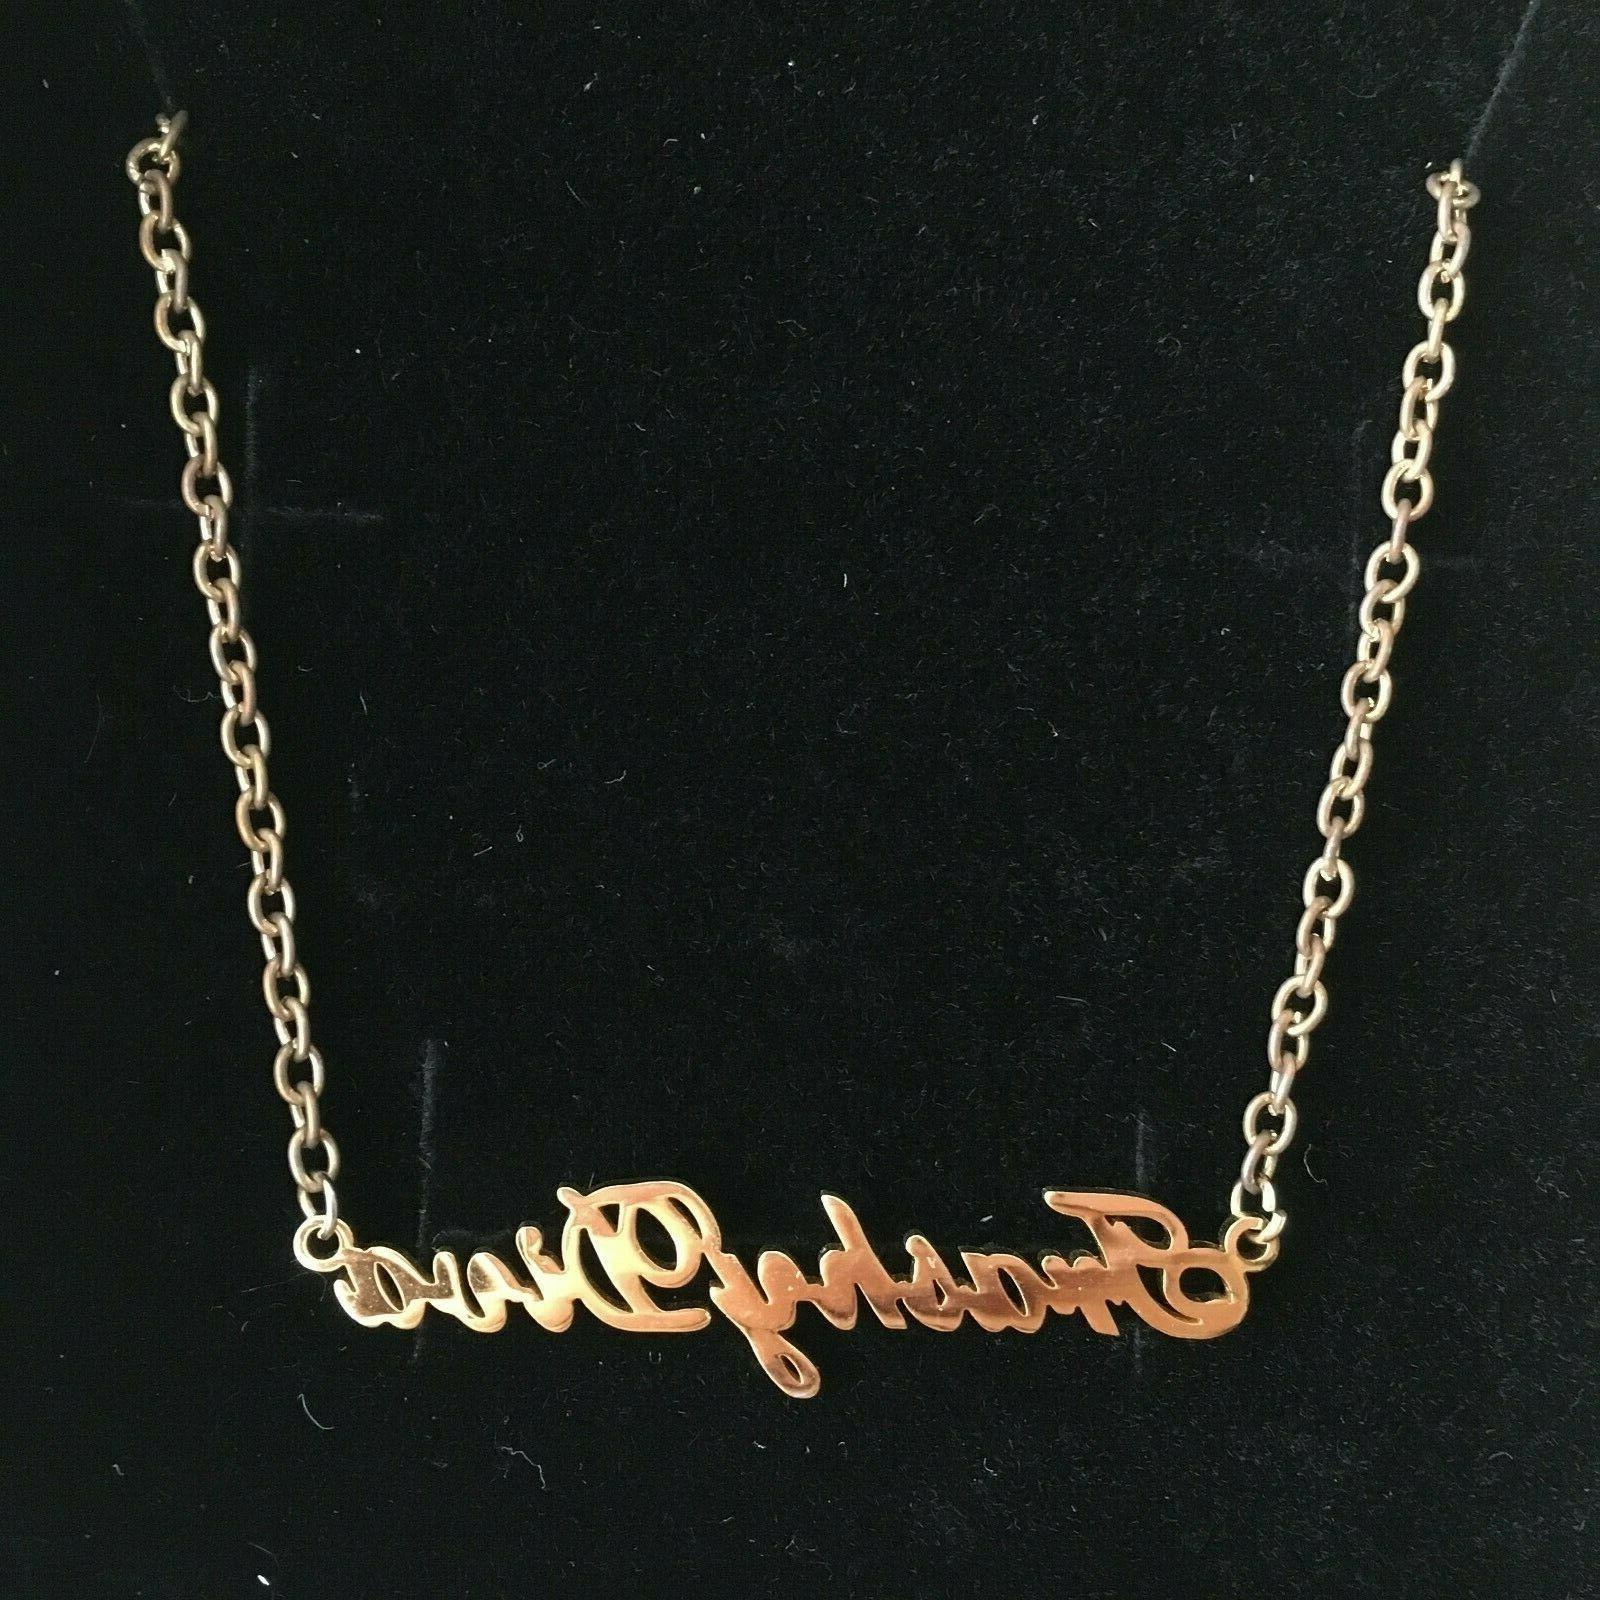 name plate necklace 90s gold novelty chain